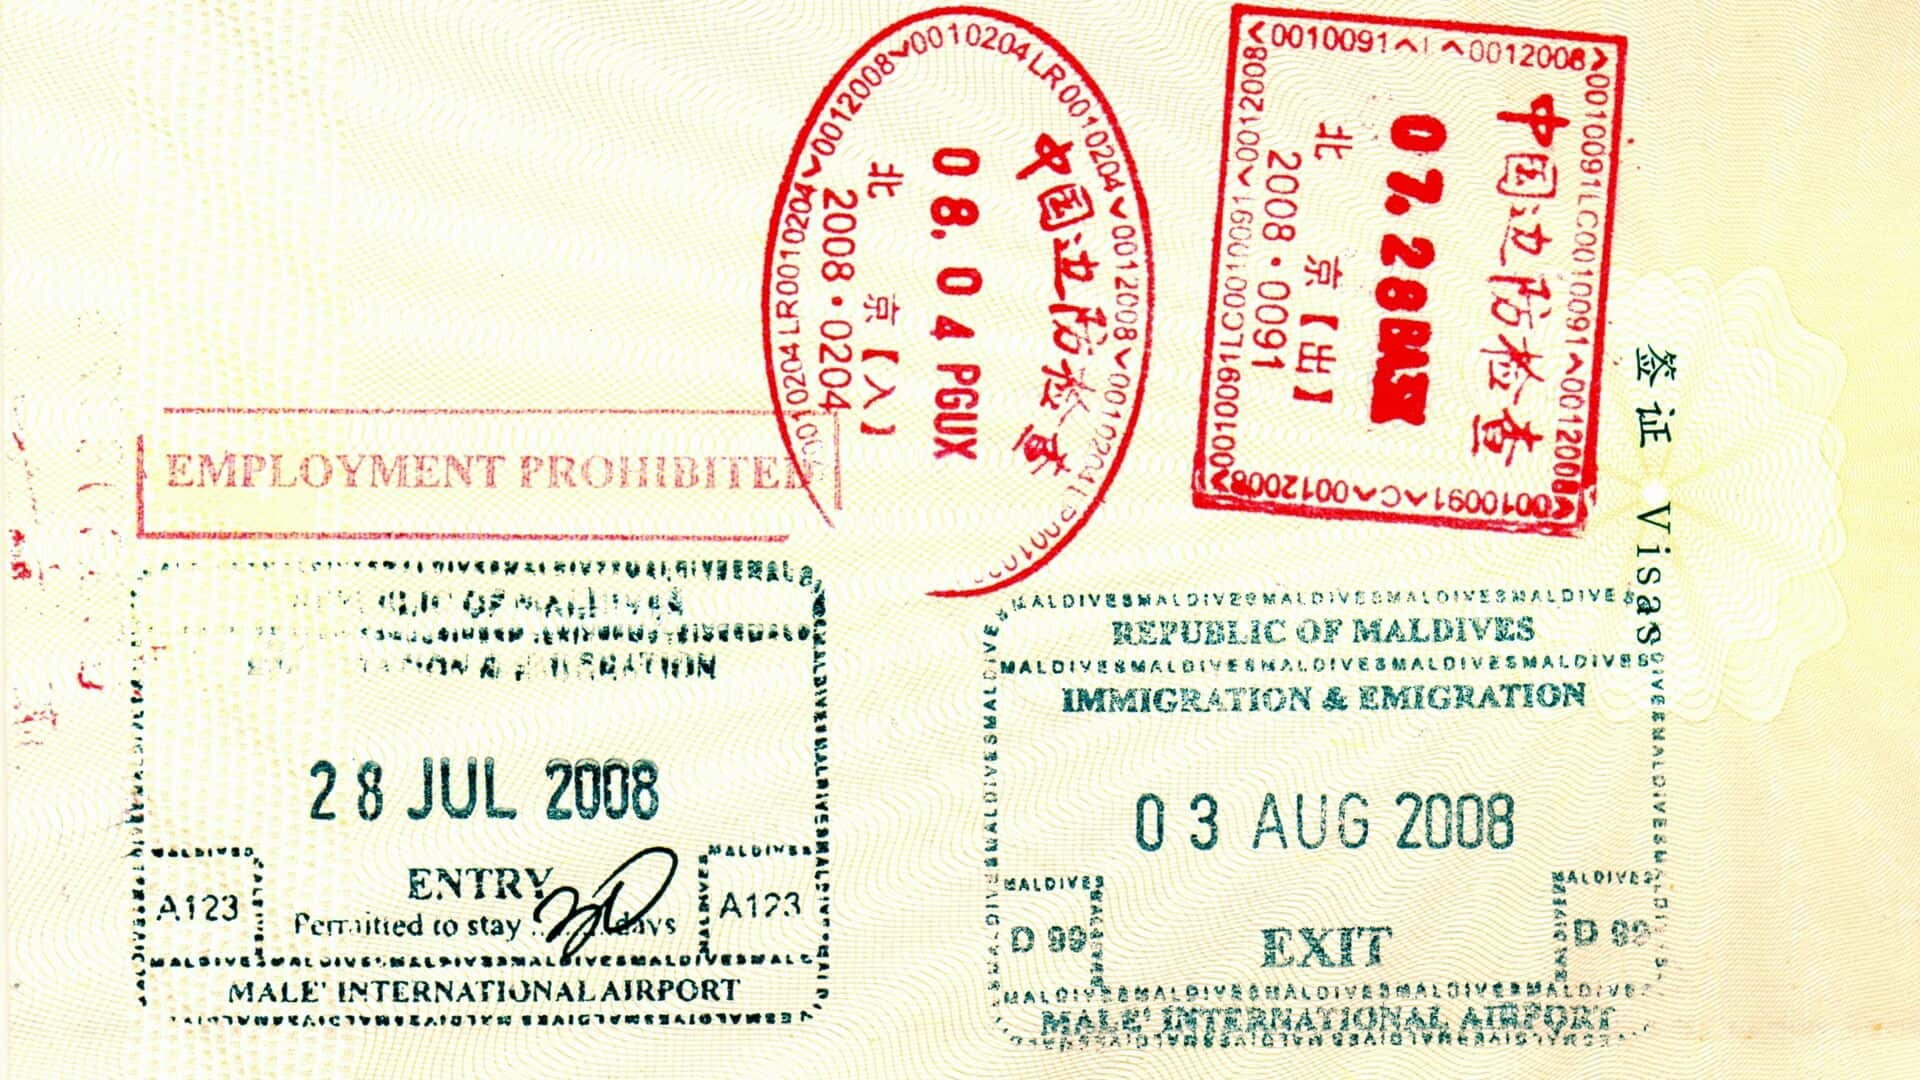 Visa to the Maldives